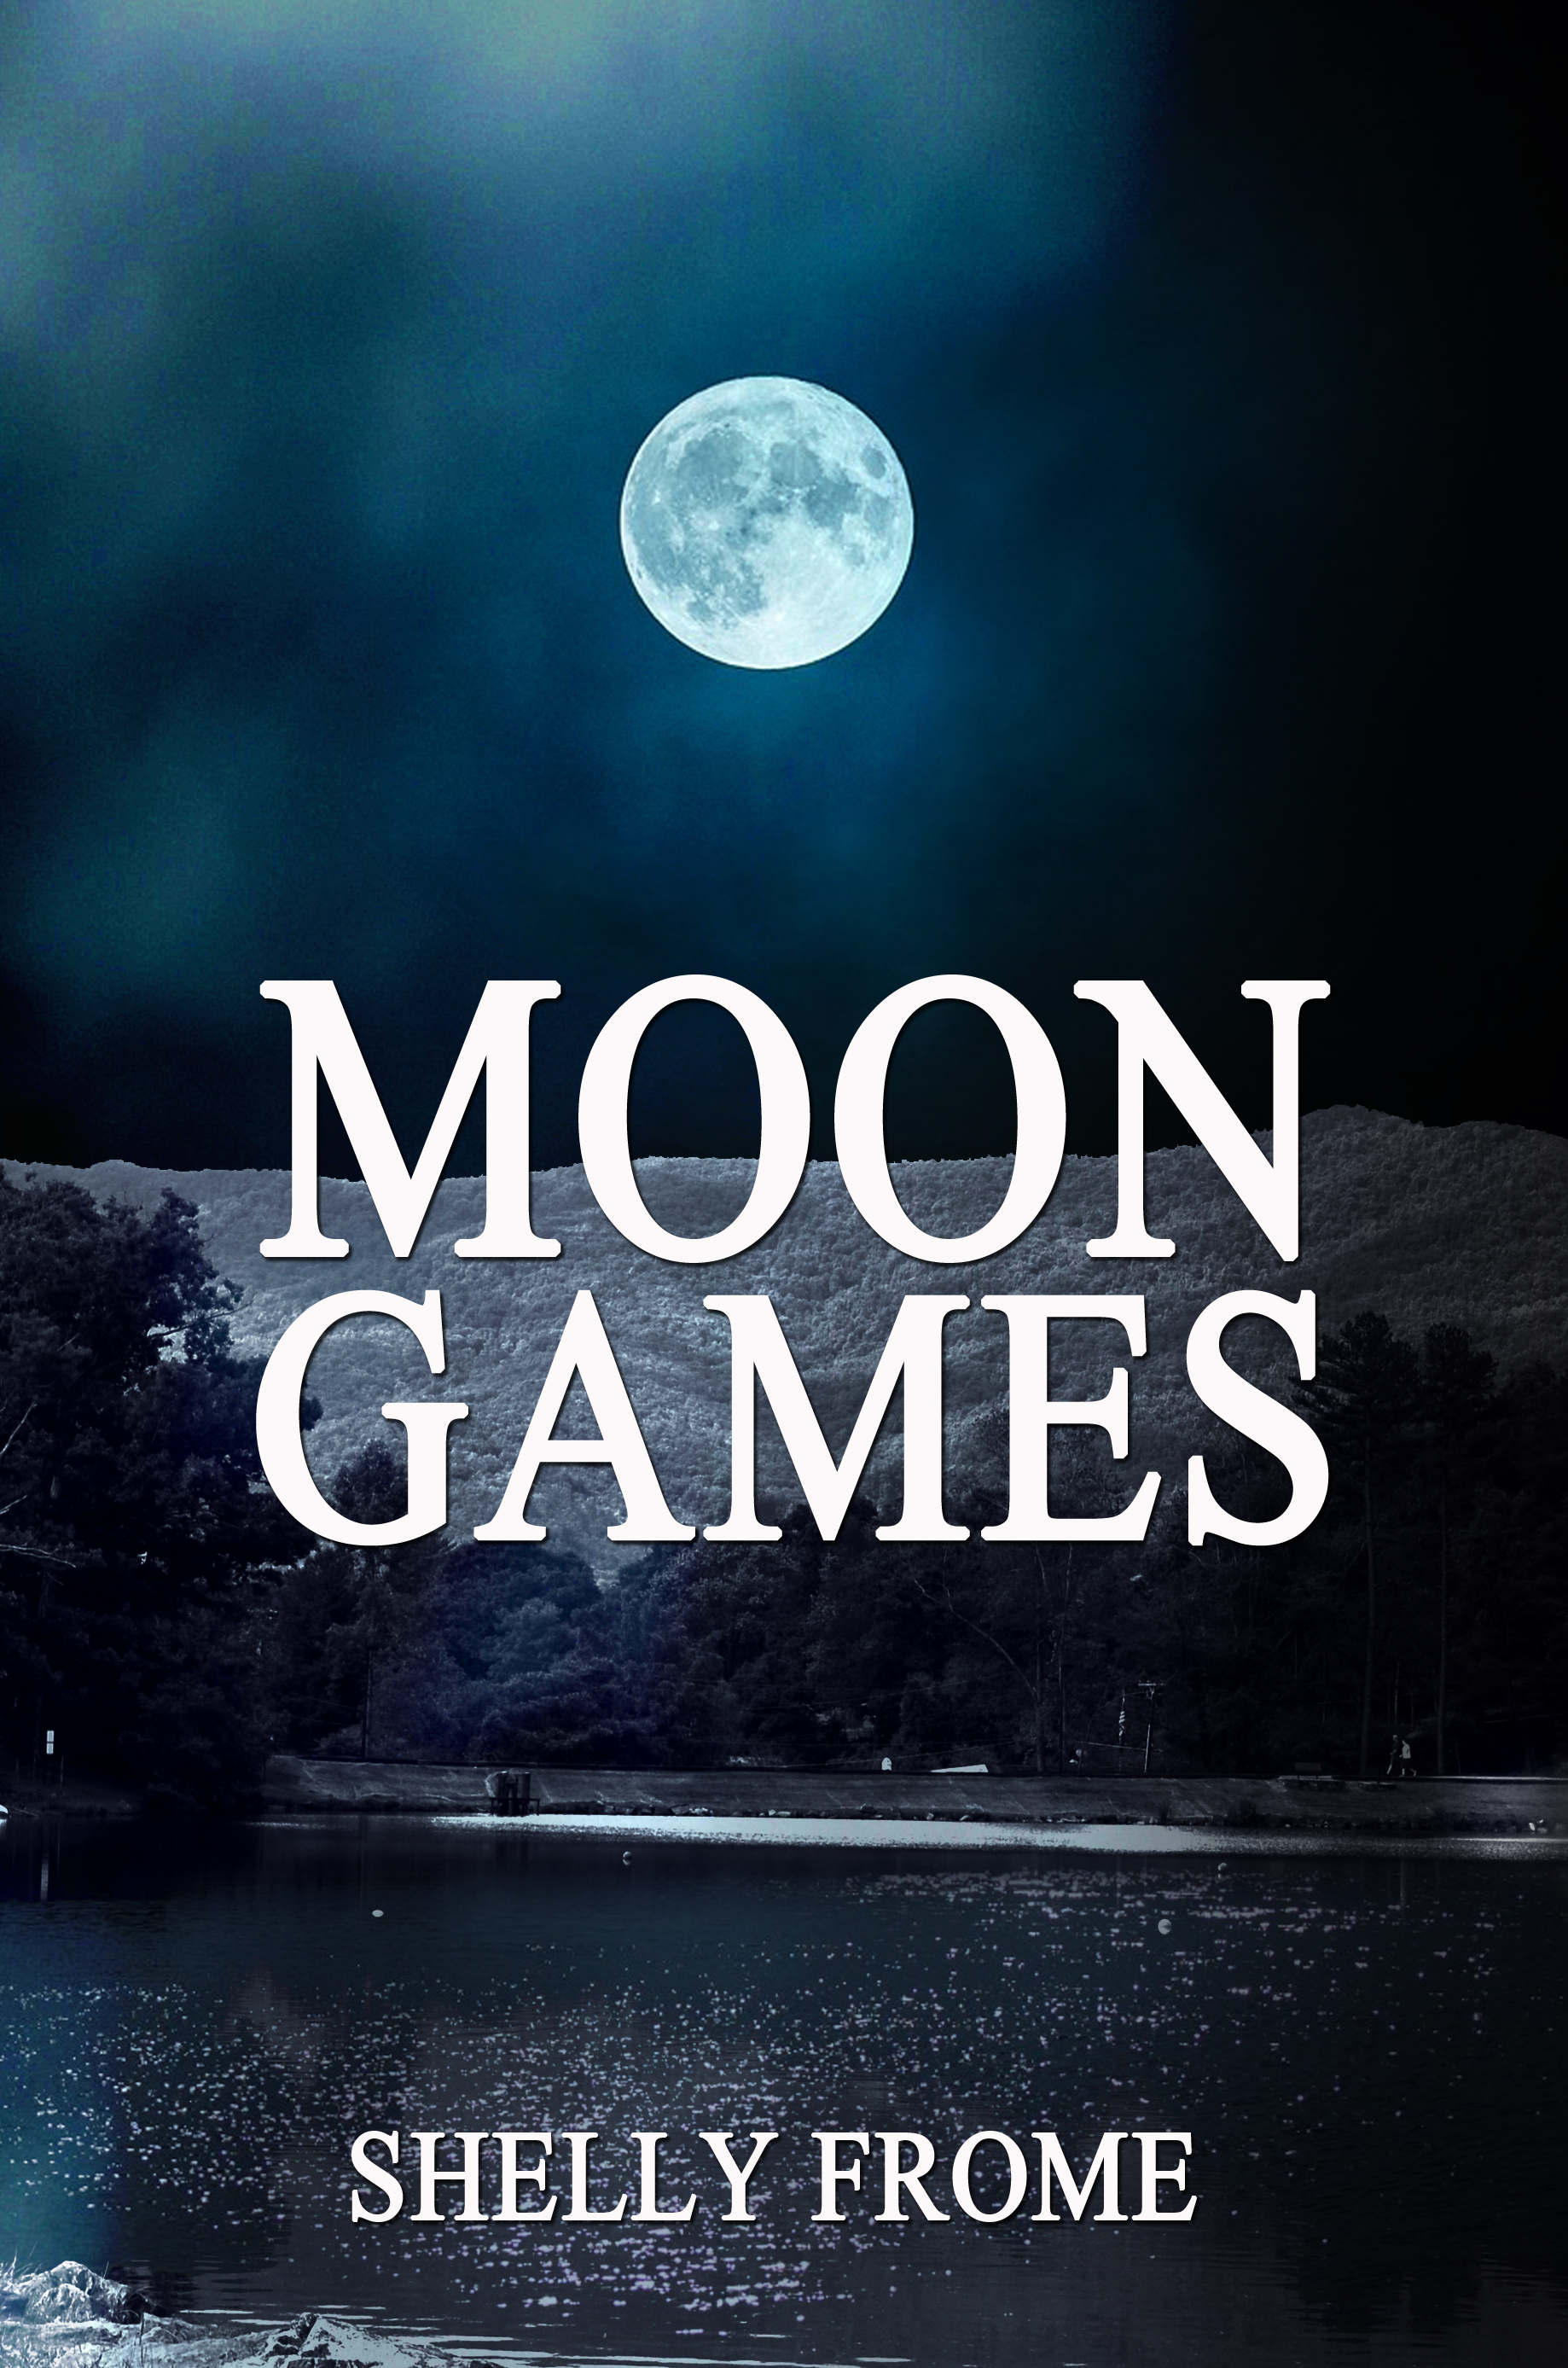 Moon Games by Shelly Frome